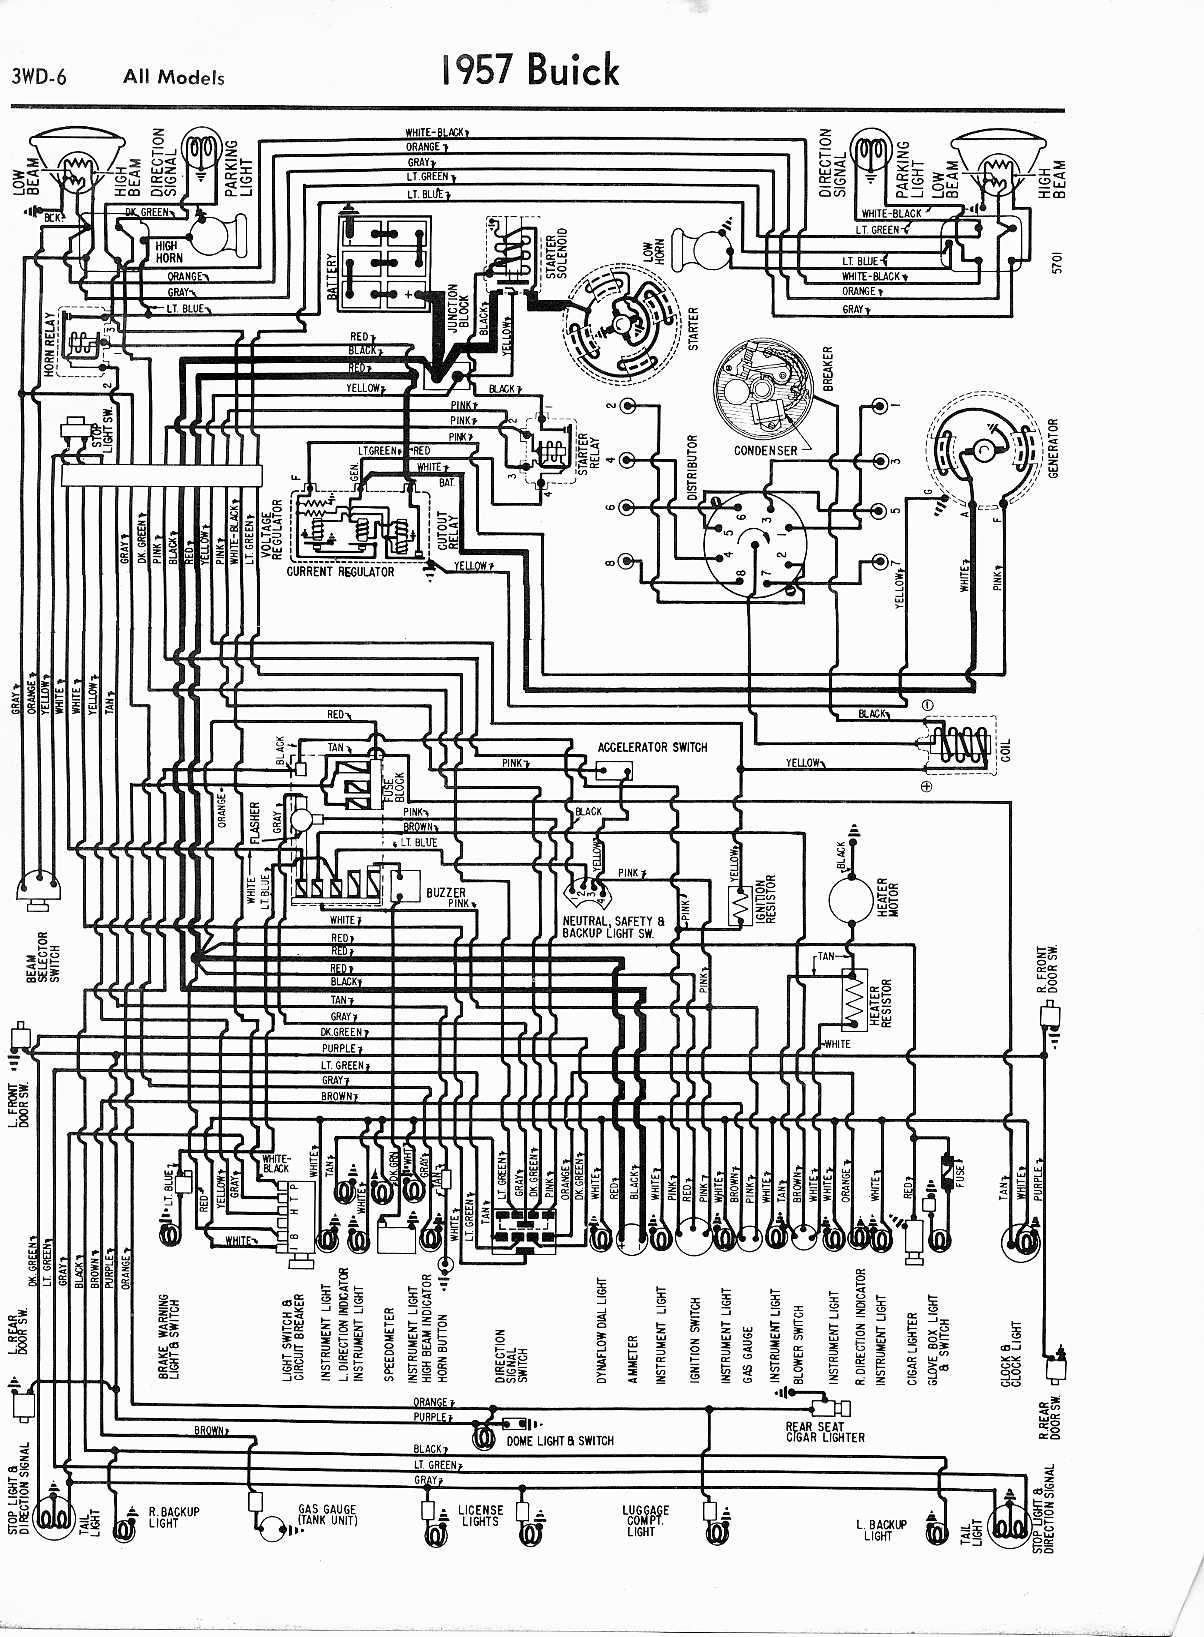 hight resolution of 1956 buick wiring diagram wiring library1956 buick wiring diagram